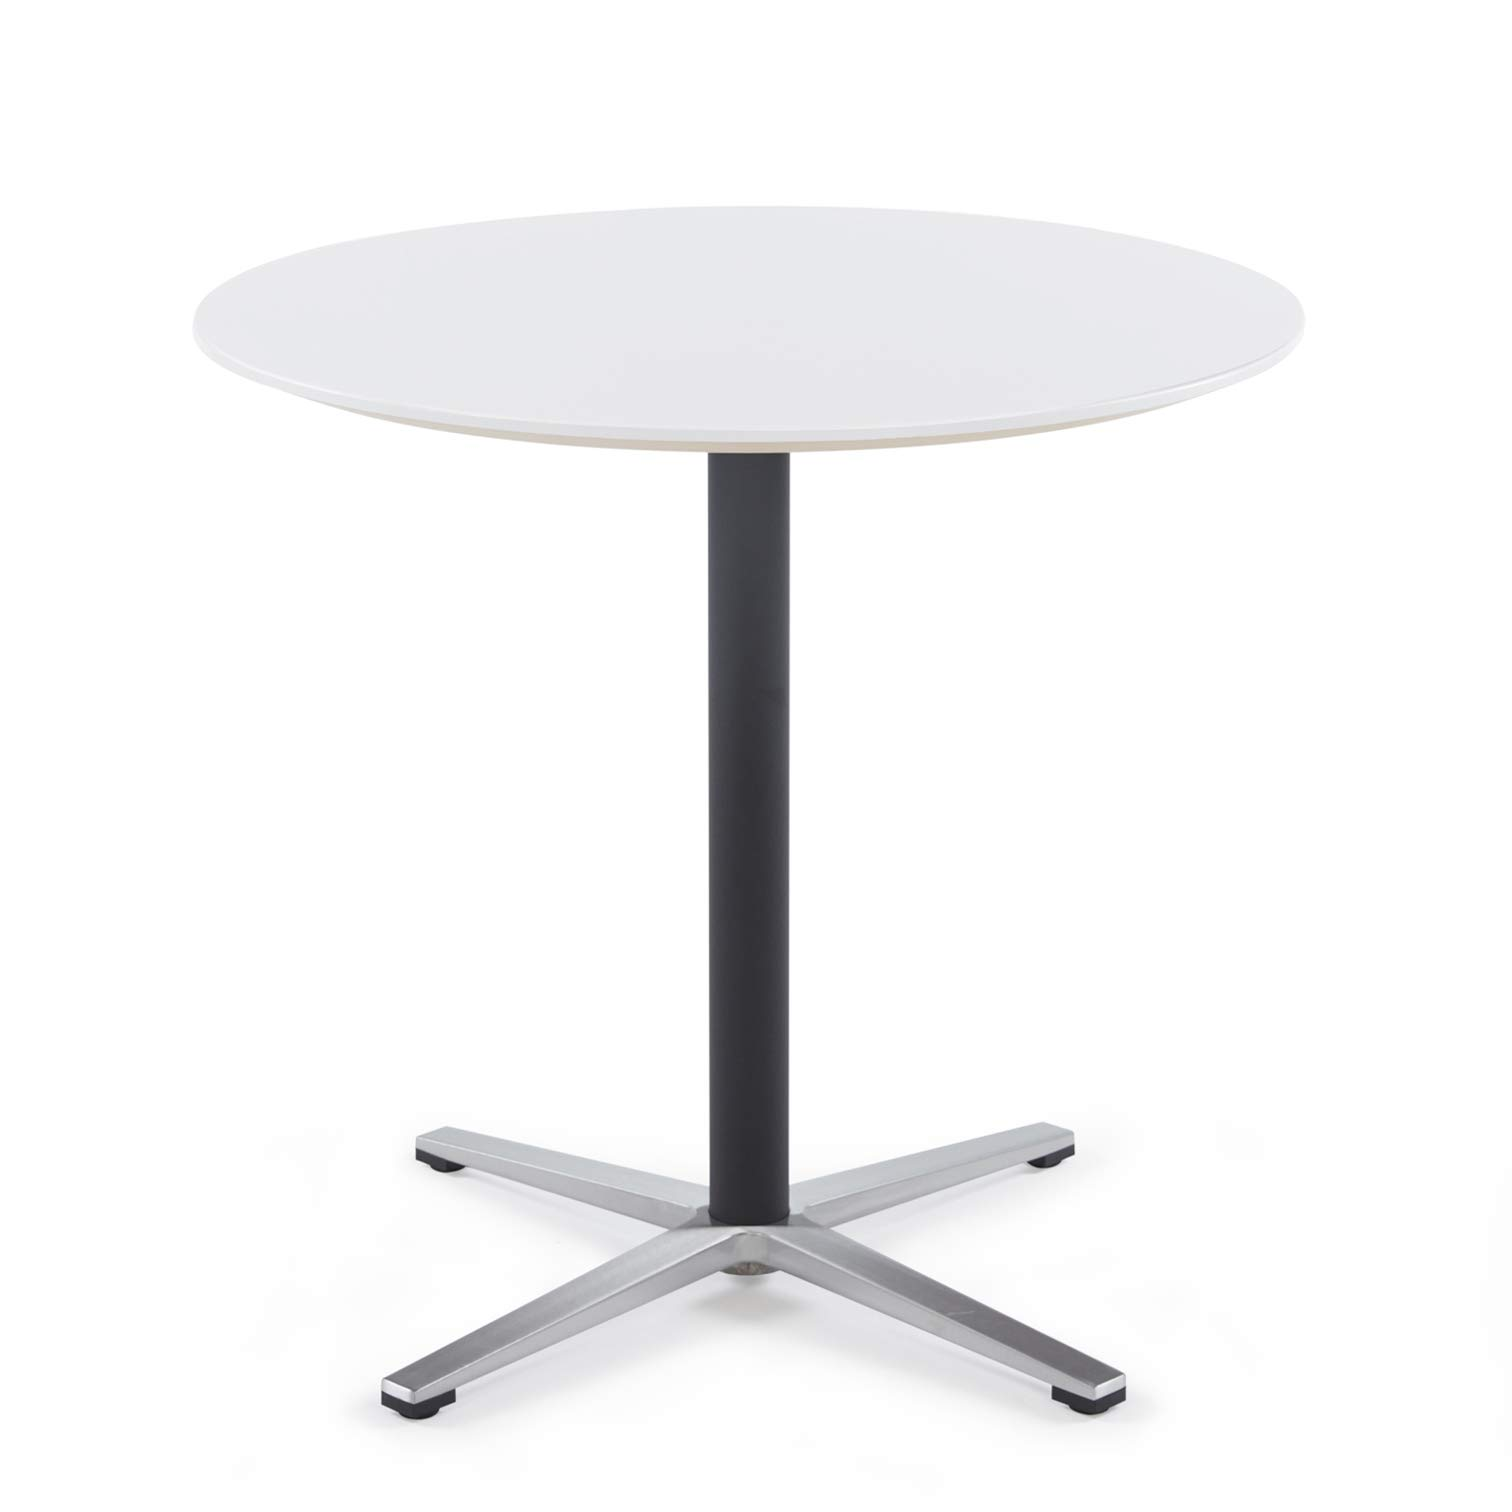 Sunon Round Bistro Table Small Round Table with X-Style Pedestal for Pub Table/Cafe Table/Office Table/Conference Table (Moon White,29.5-Inch Height) by Sunon